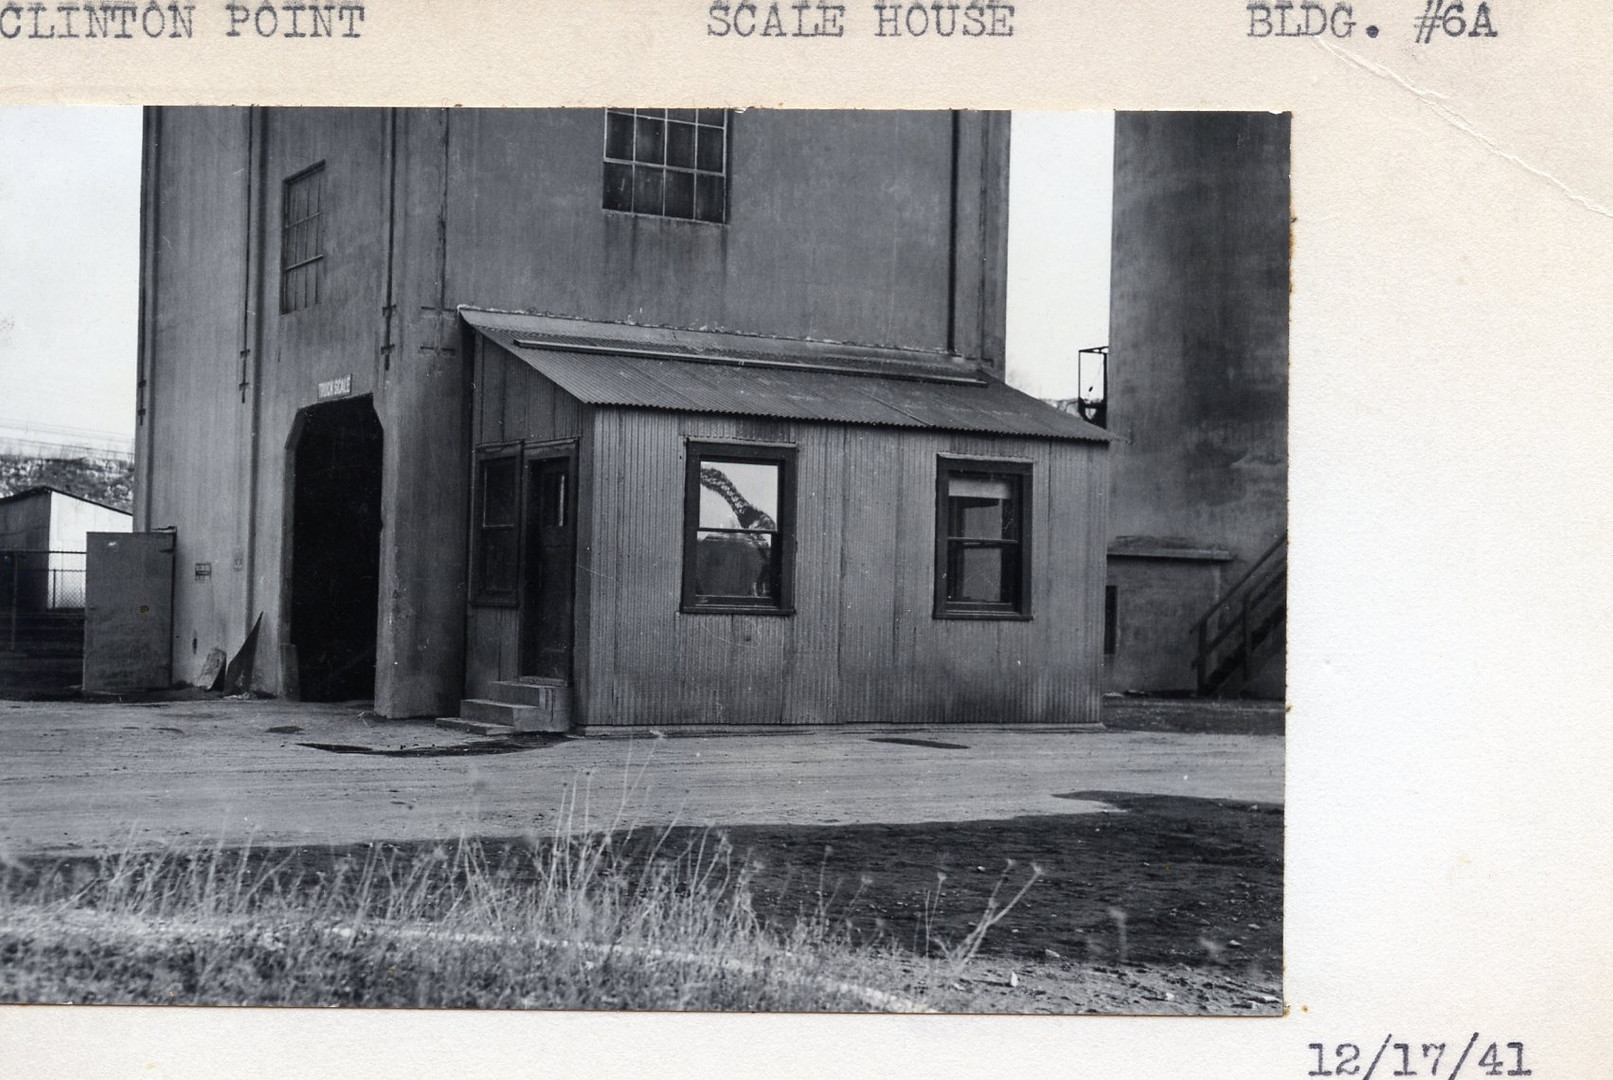 Scale House, Building #6A 12/17/41